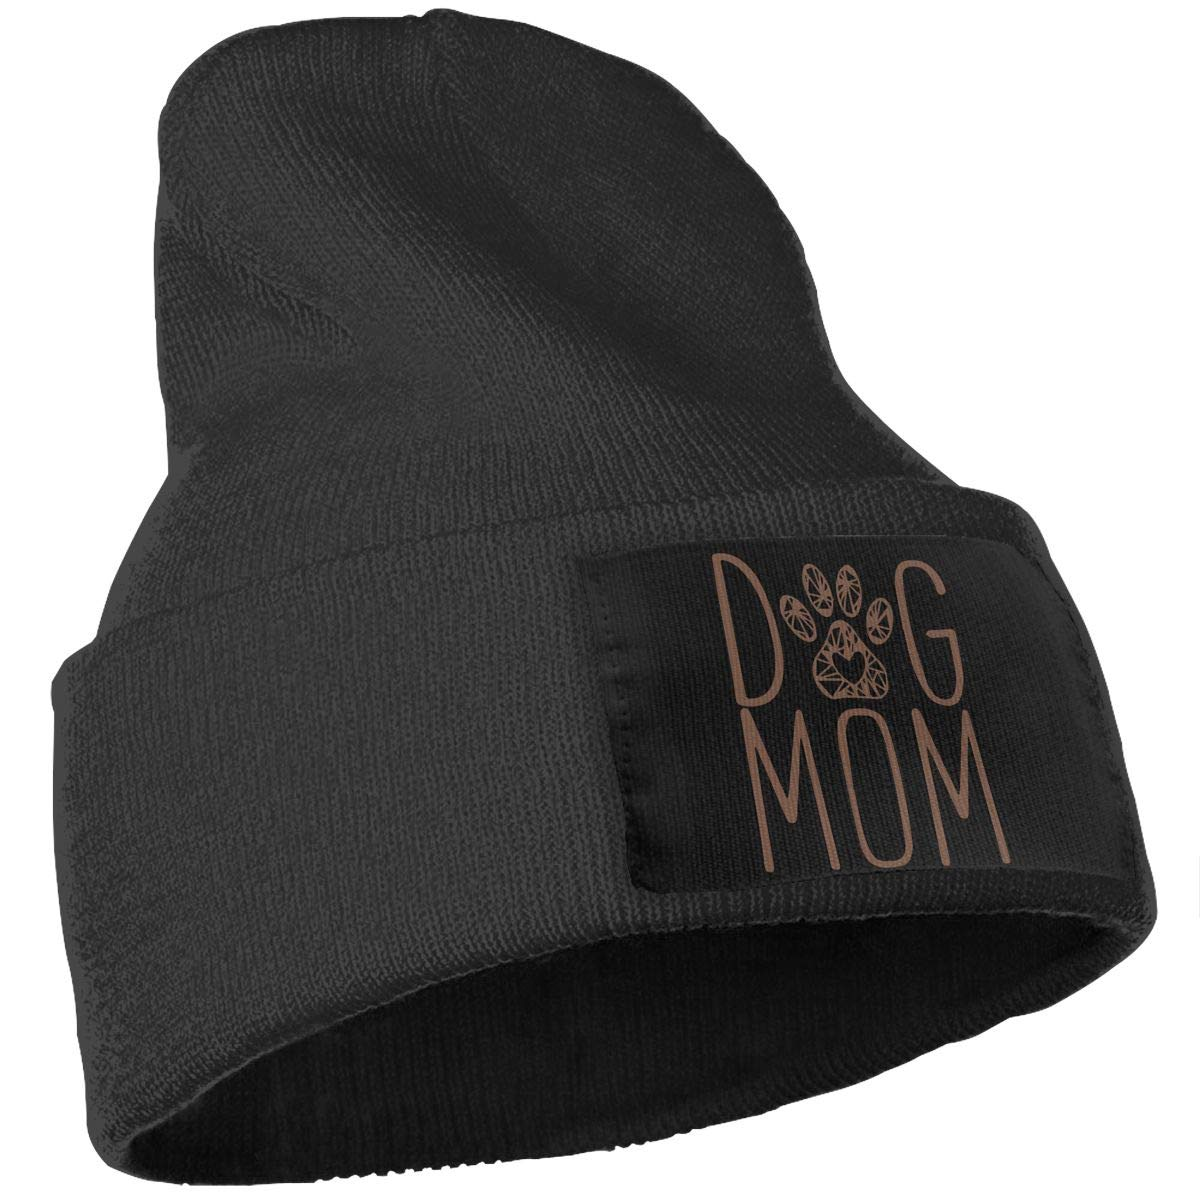 Dog Mom Soft Skull Beanie WHOO93@Y Mens Womens 100/% Acrylic Knitting Hat Cap